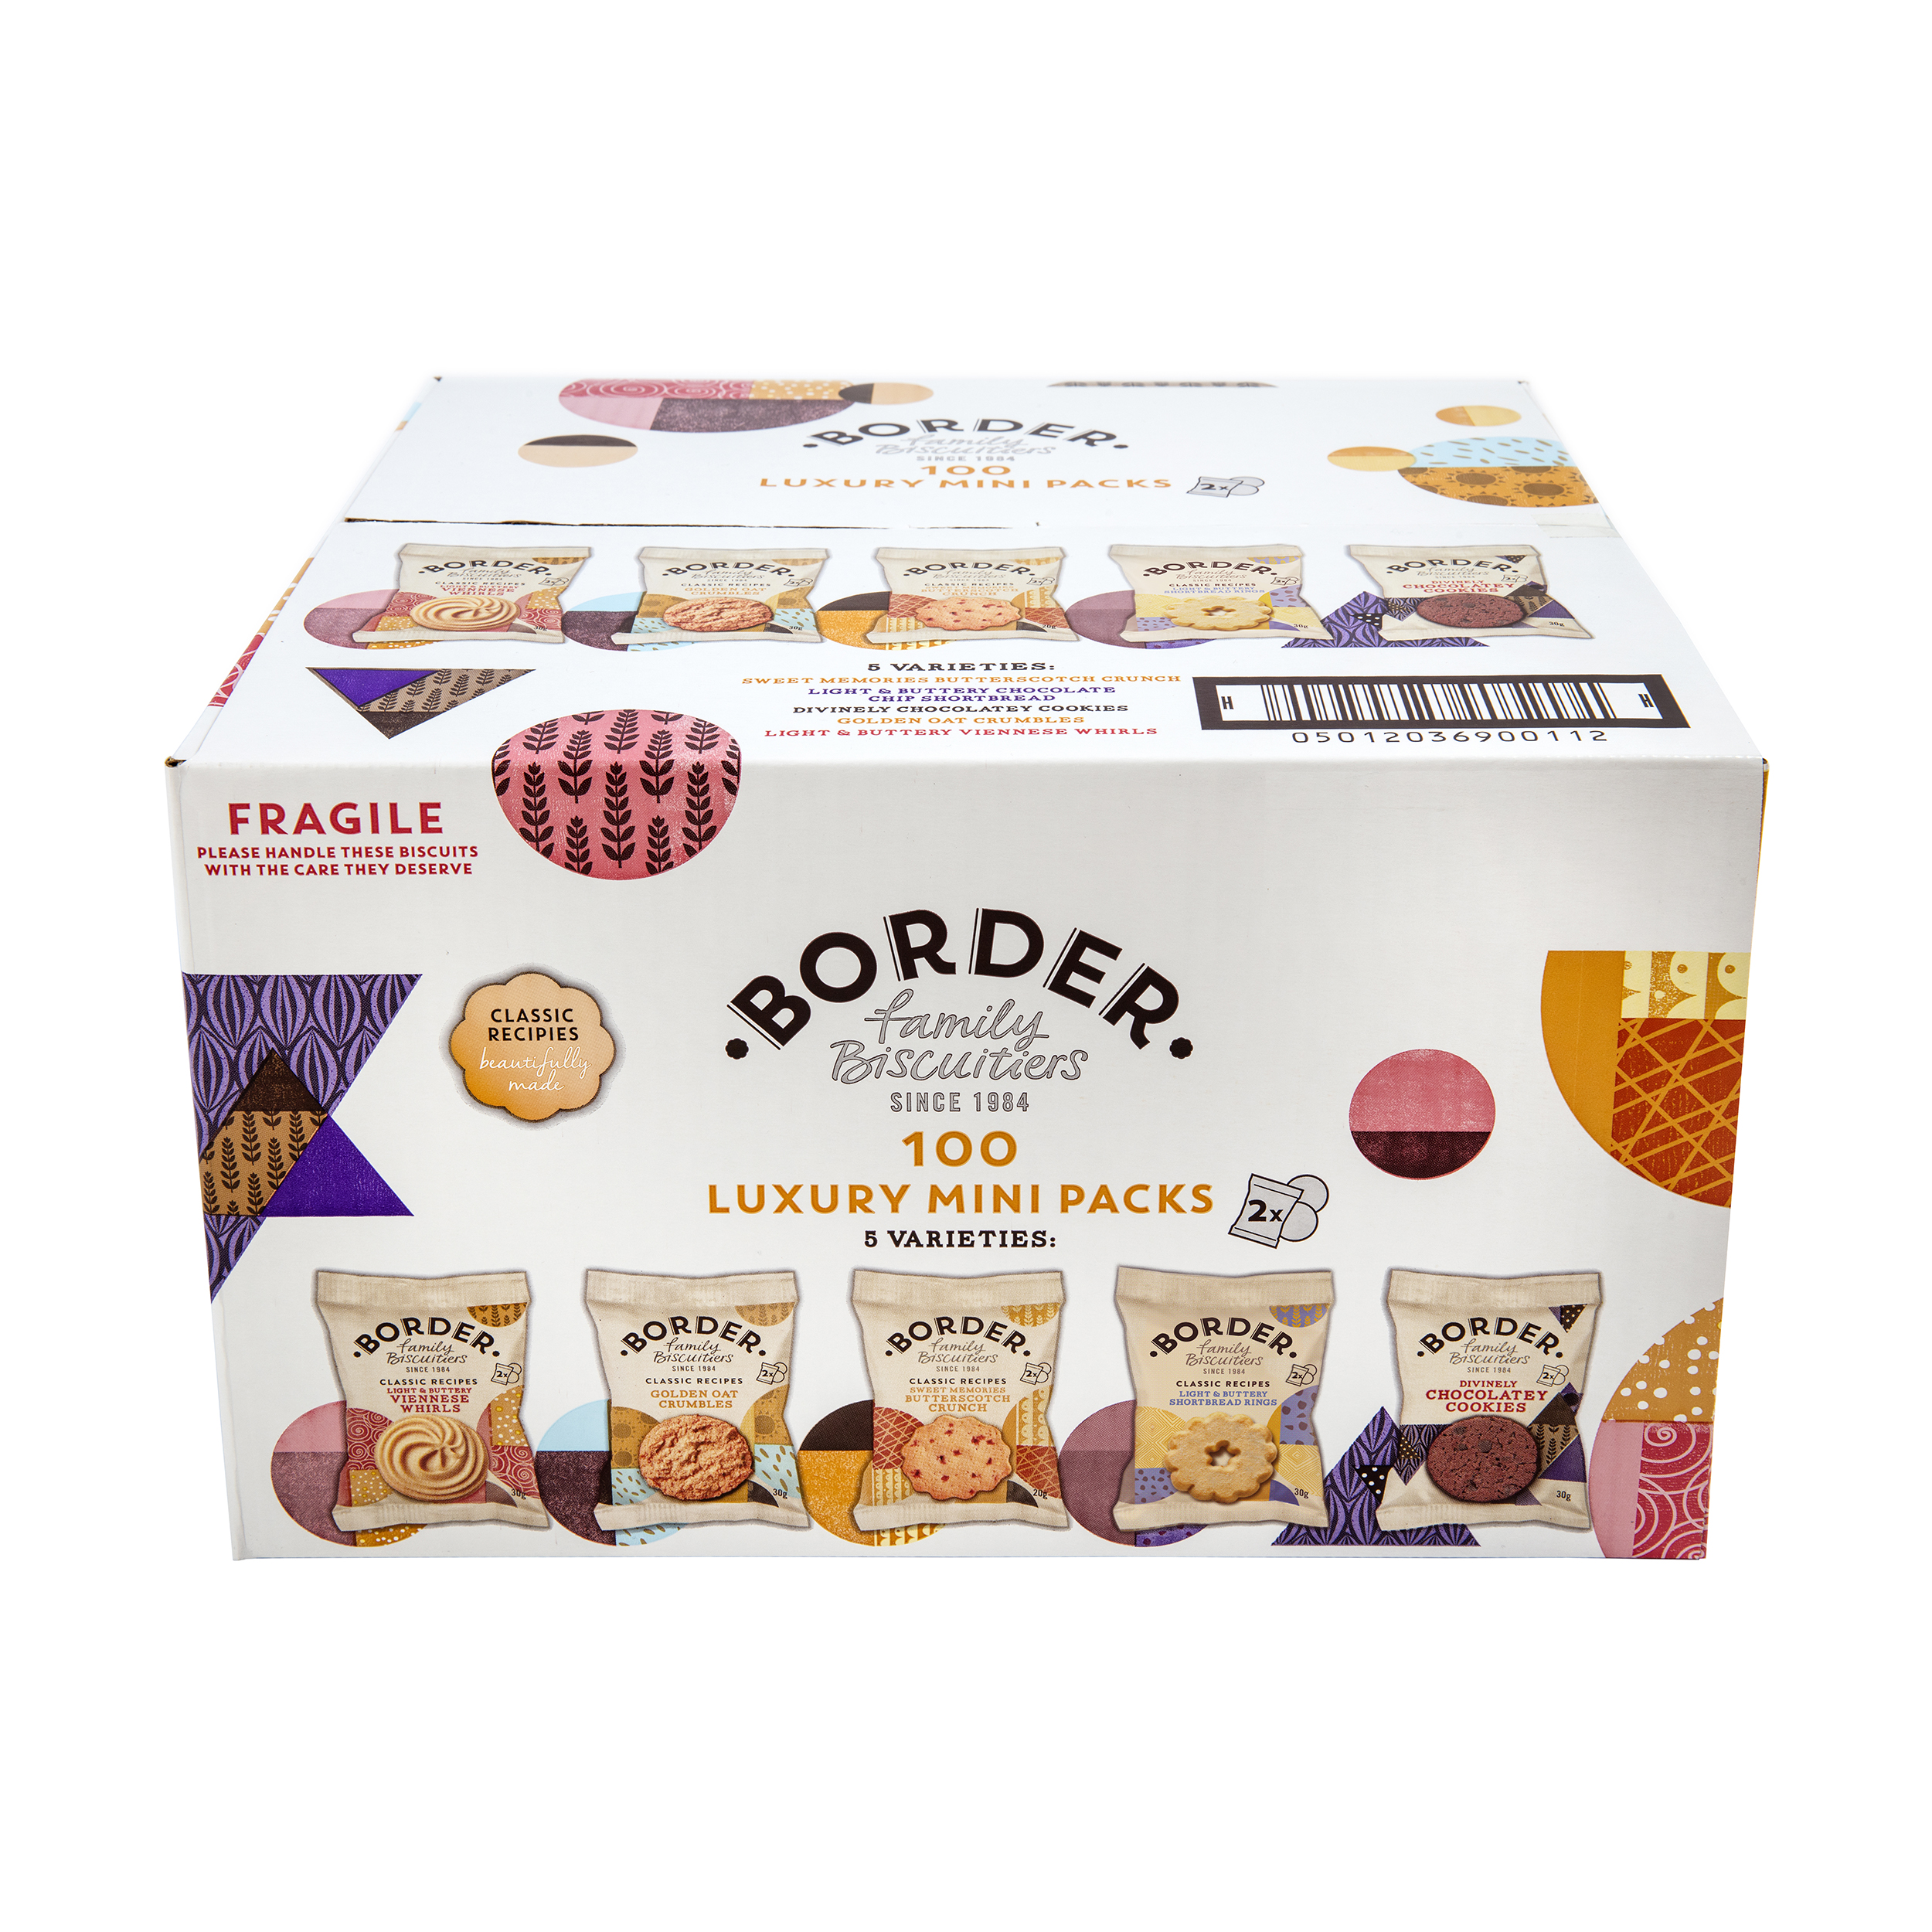 Border Luxury Biscuits 5 Varieties Mini Twinpack Ref 0401049 [Pack 100]